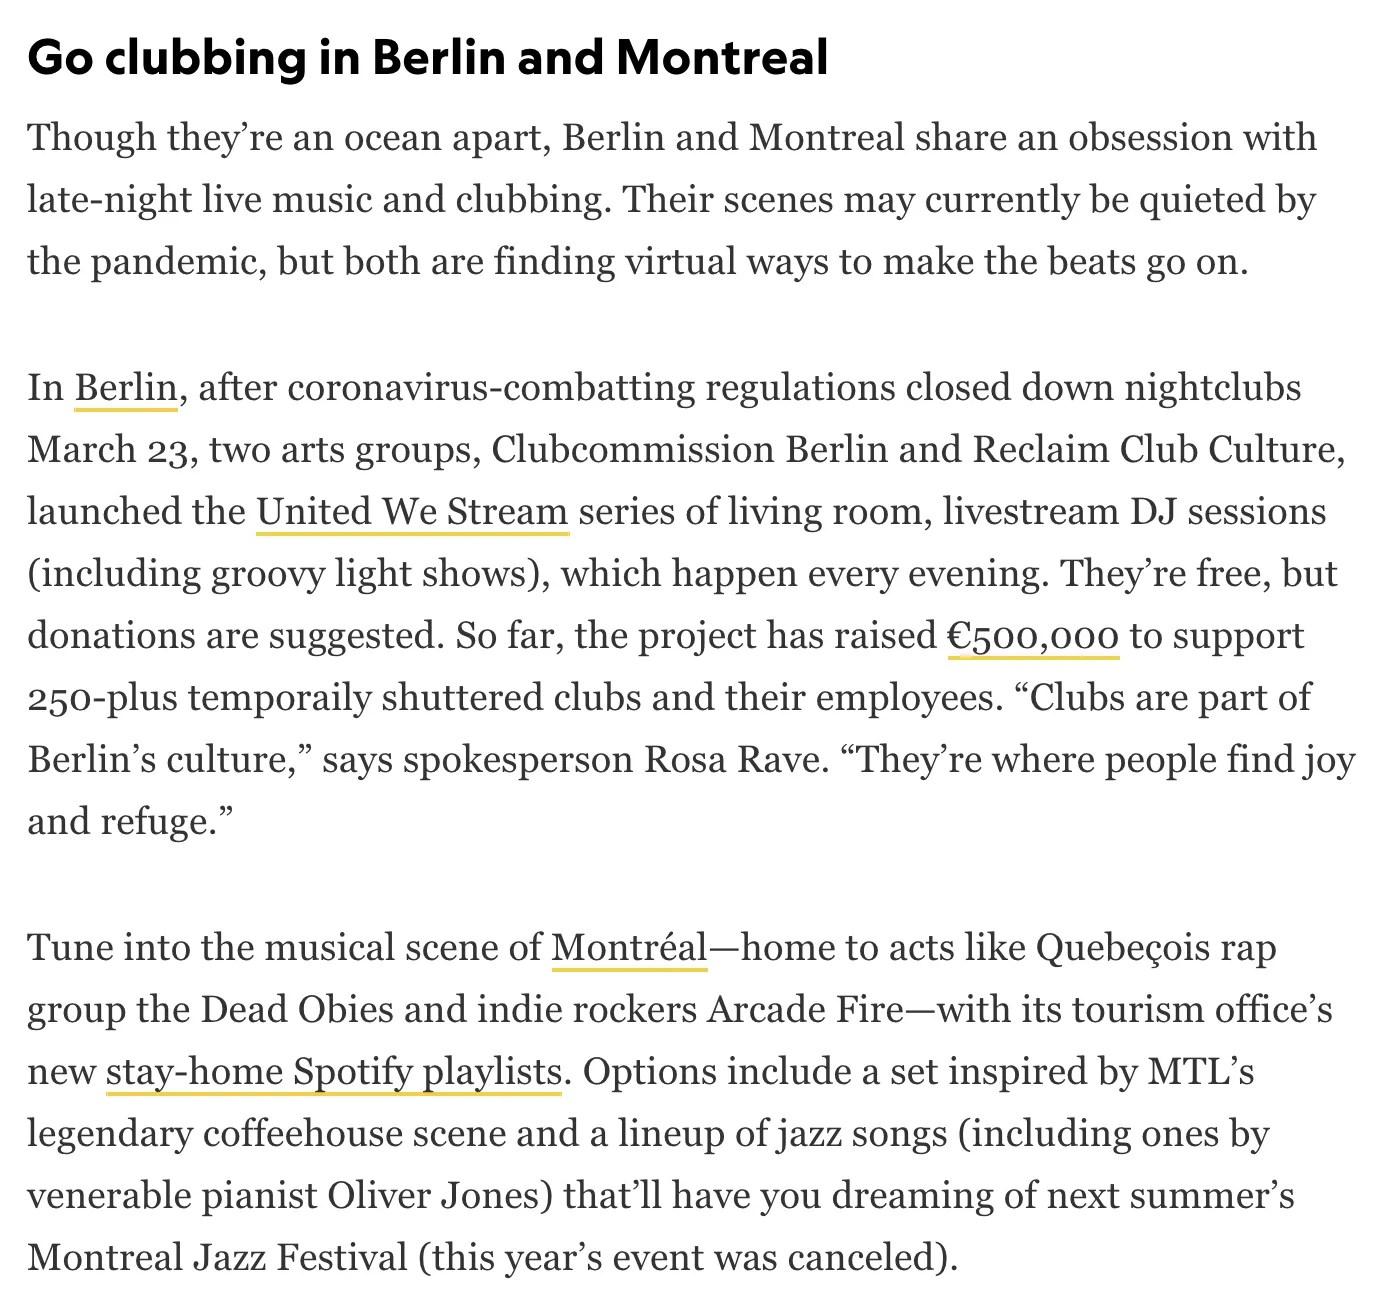 Go clubbing in Berlin and Montreal - National Geographic